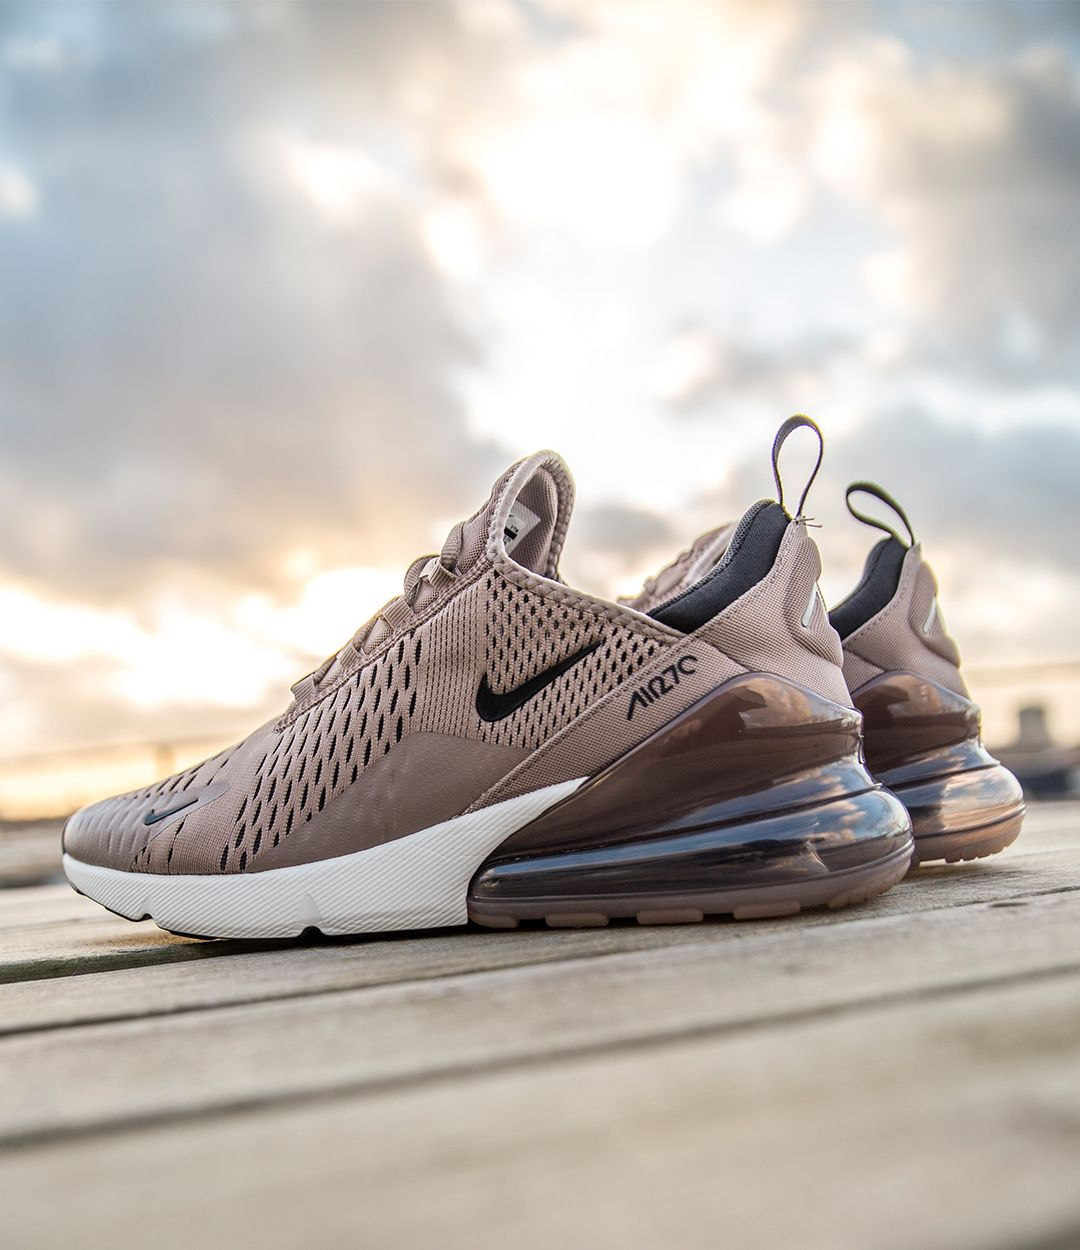 outlet undefeated x hot sale Nike Air Max 270 | Sneakers fashion, Sneakers men fashion, Shoes mens